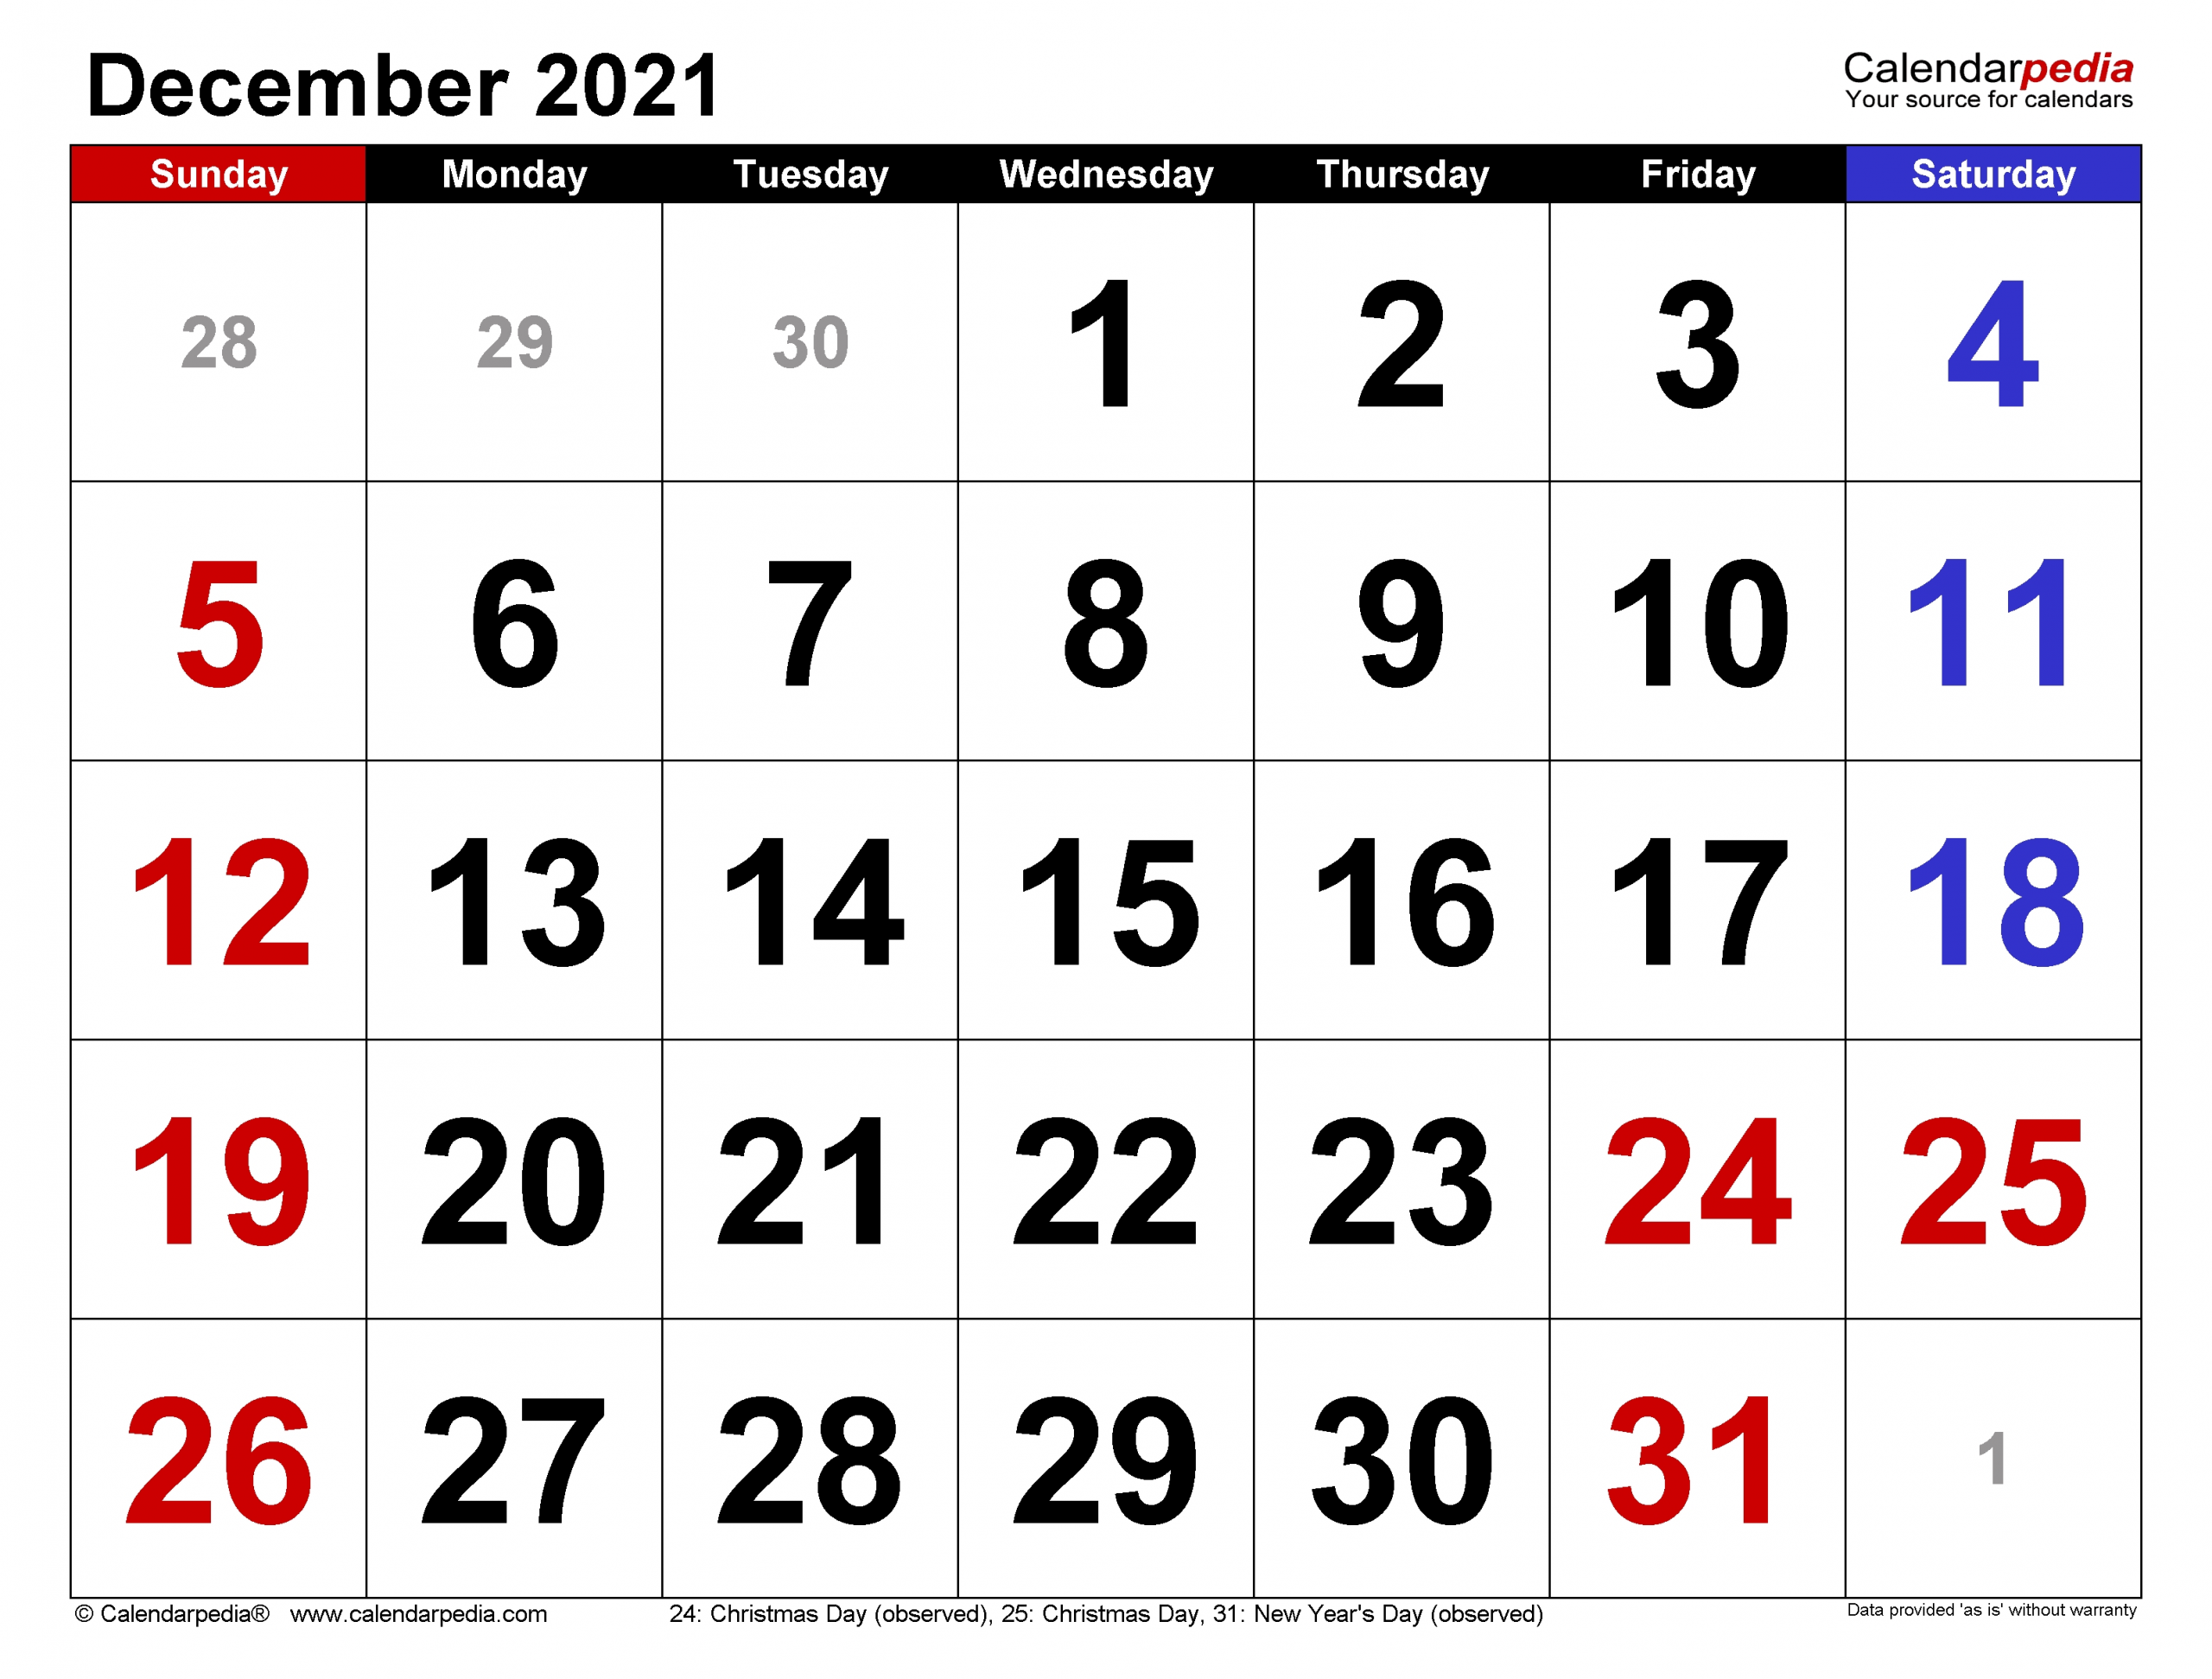 Take December Christmas Calendar Printable 2021